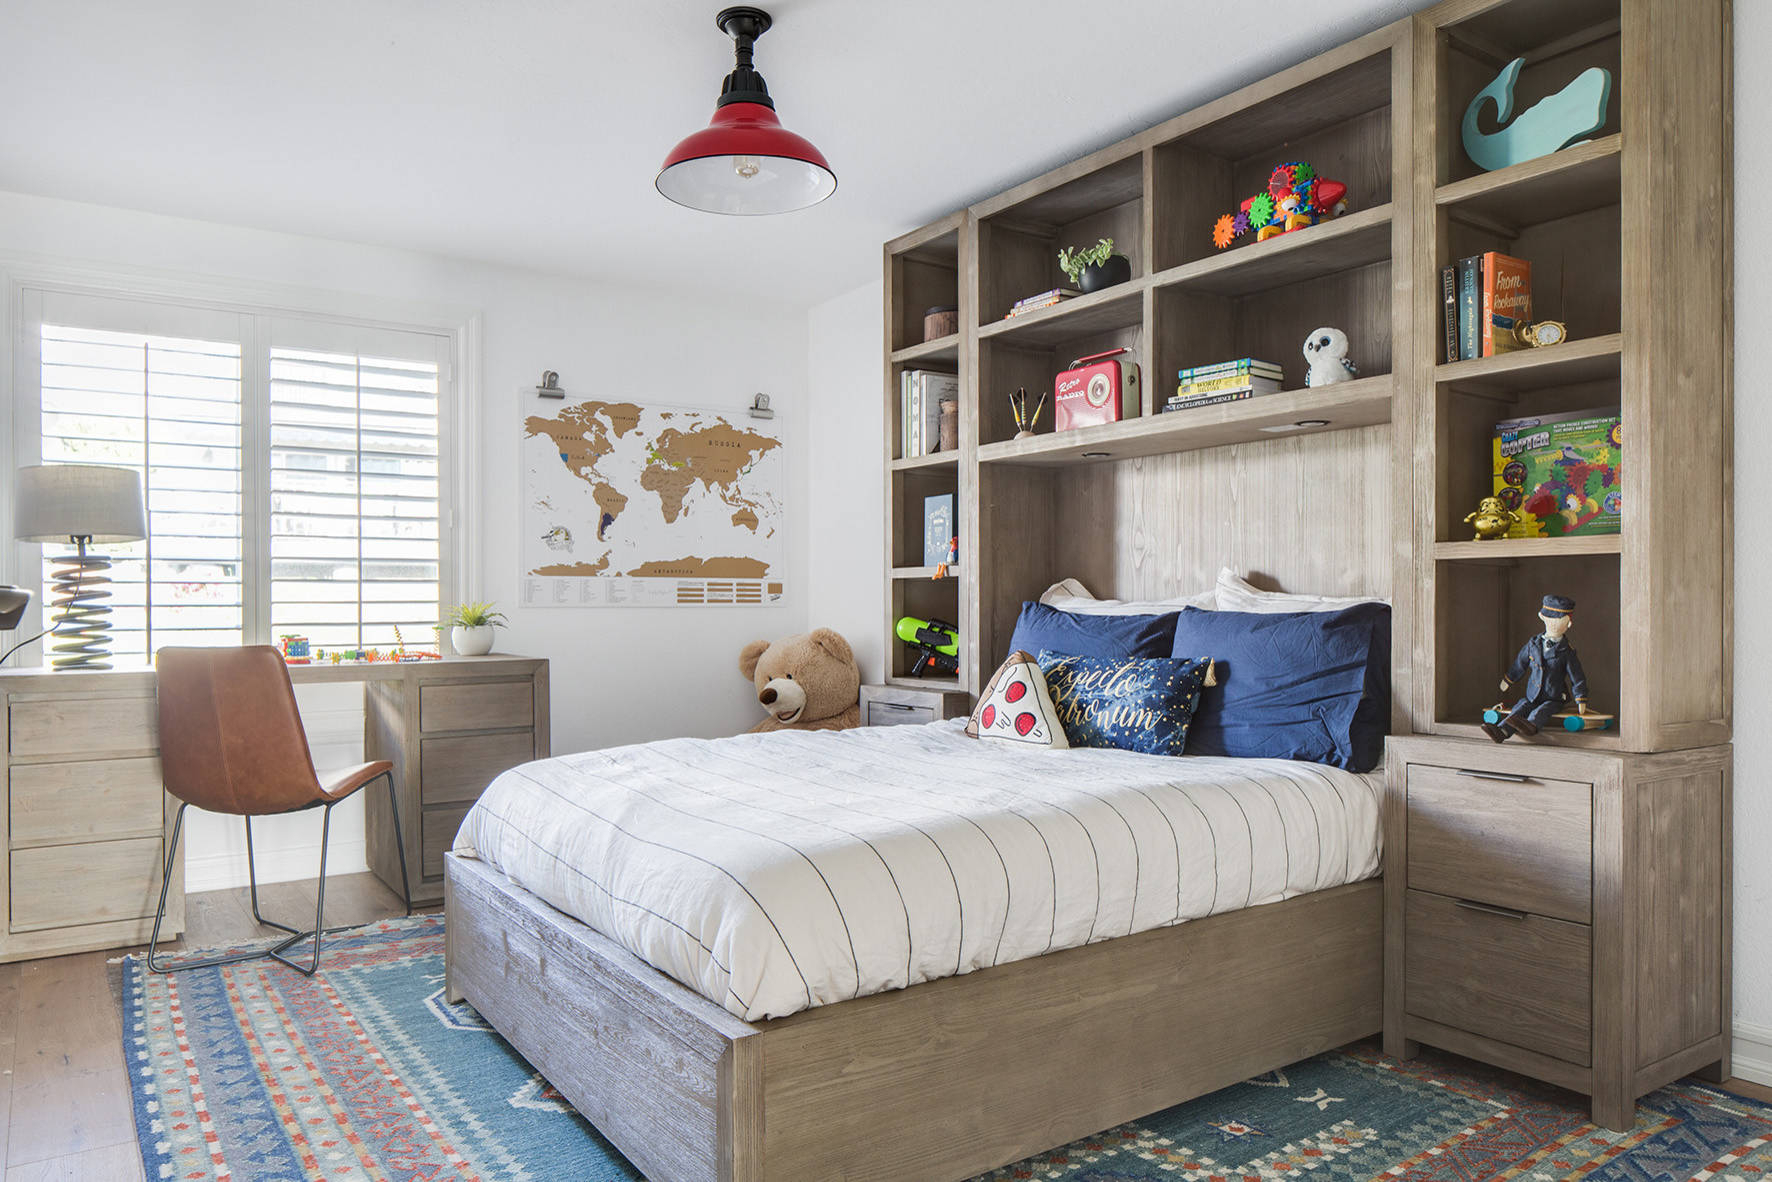 Kids Bedroom Furniture   Interior Design Intended For Bedroom Sofas And Chairs (View 1 of 15)